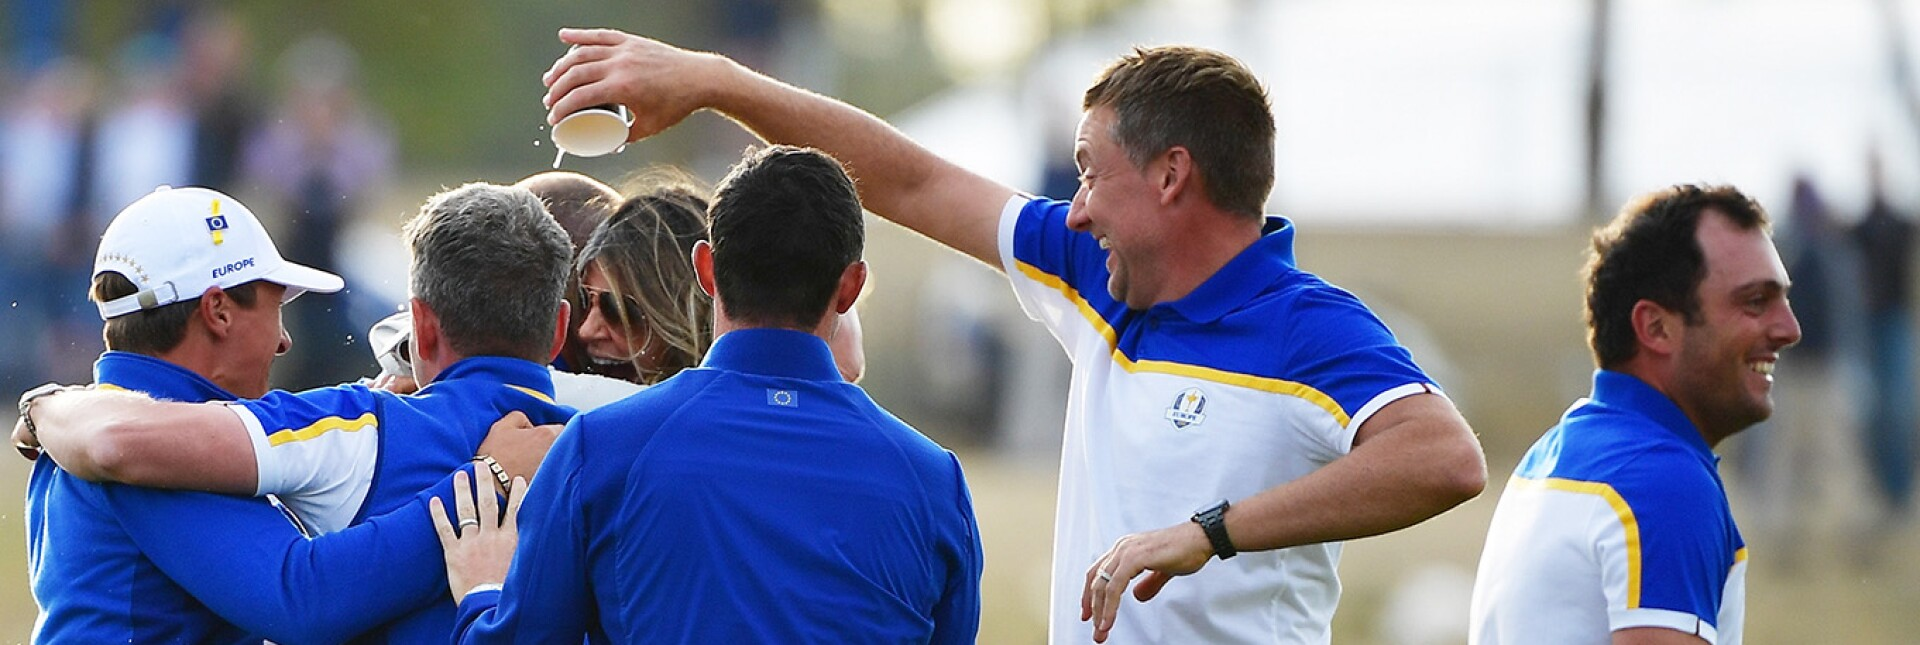 ryder cup lessons.jpg